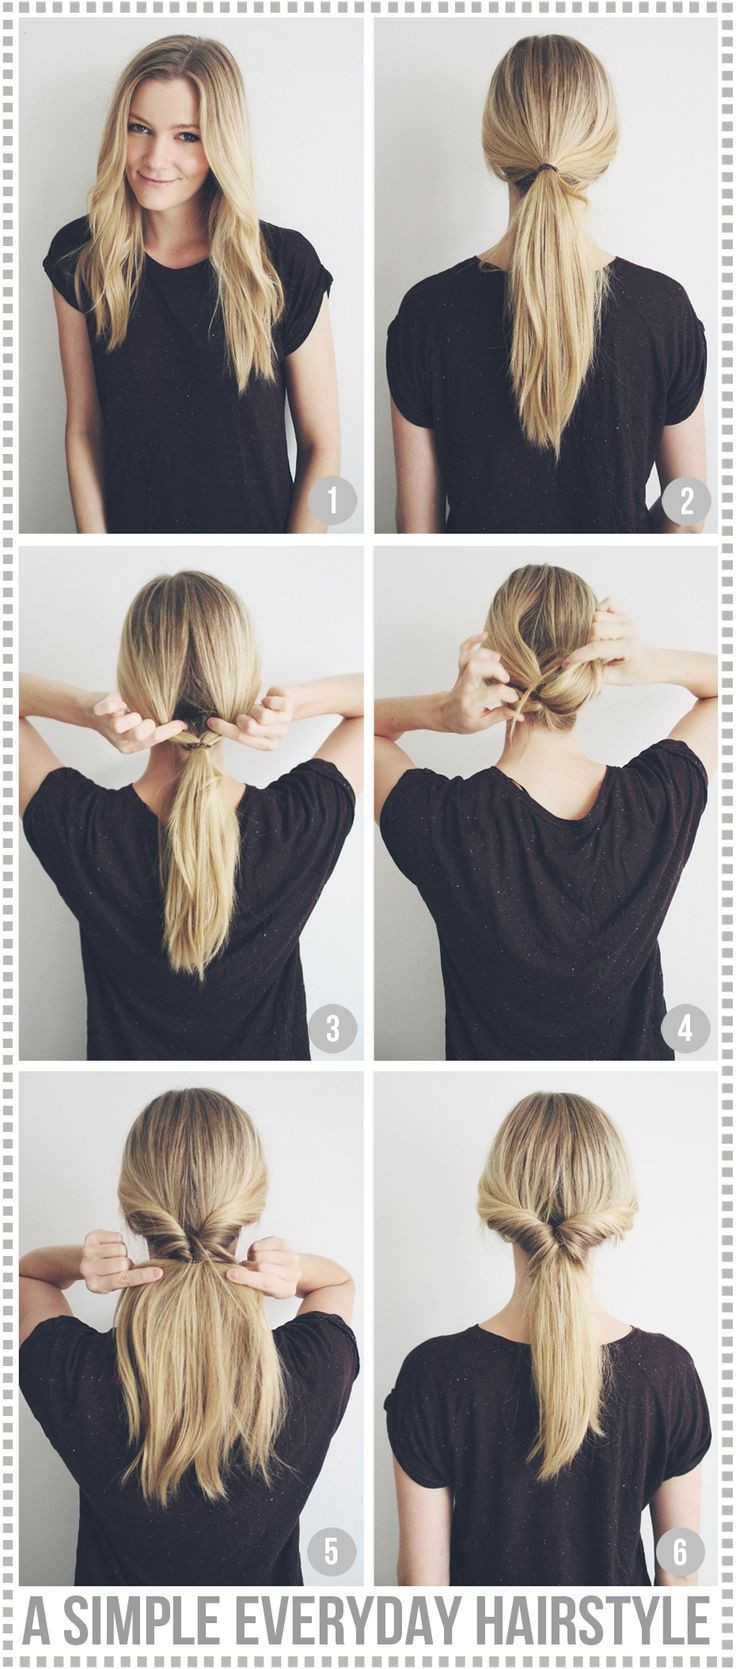 Best ideas about Easy Everyday Hairstyle . Save or Pin A simple everyday hairstyle Passions for Fashion Now.